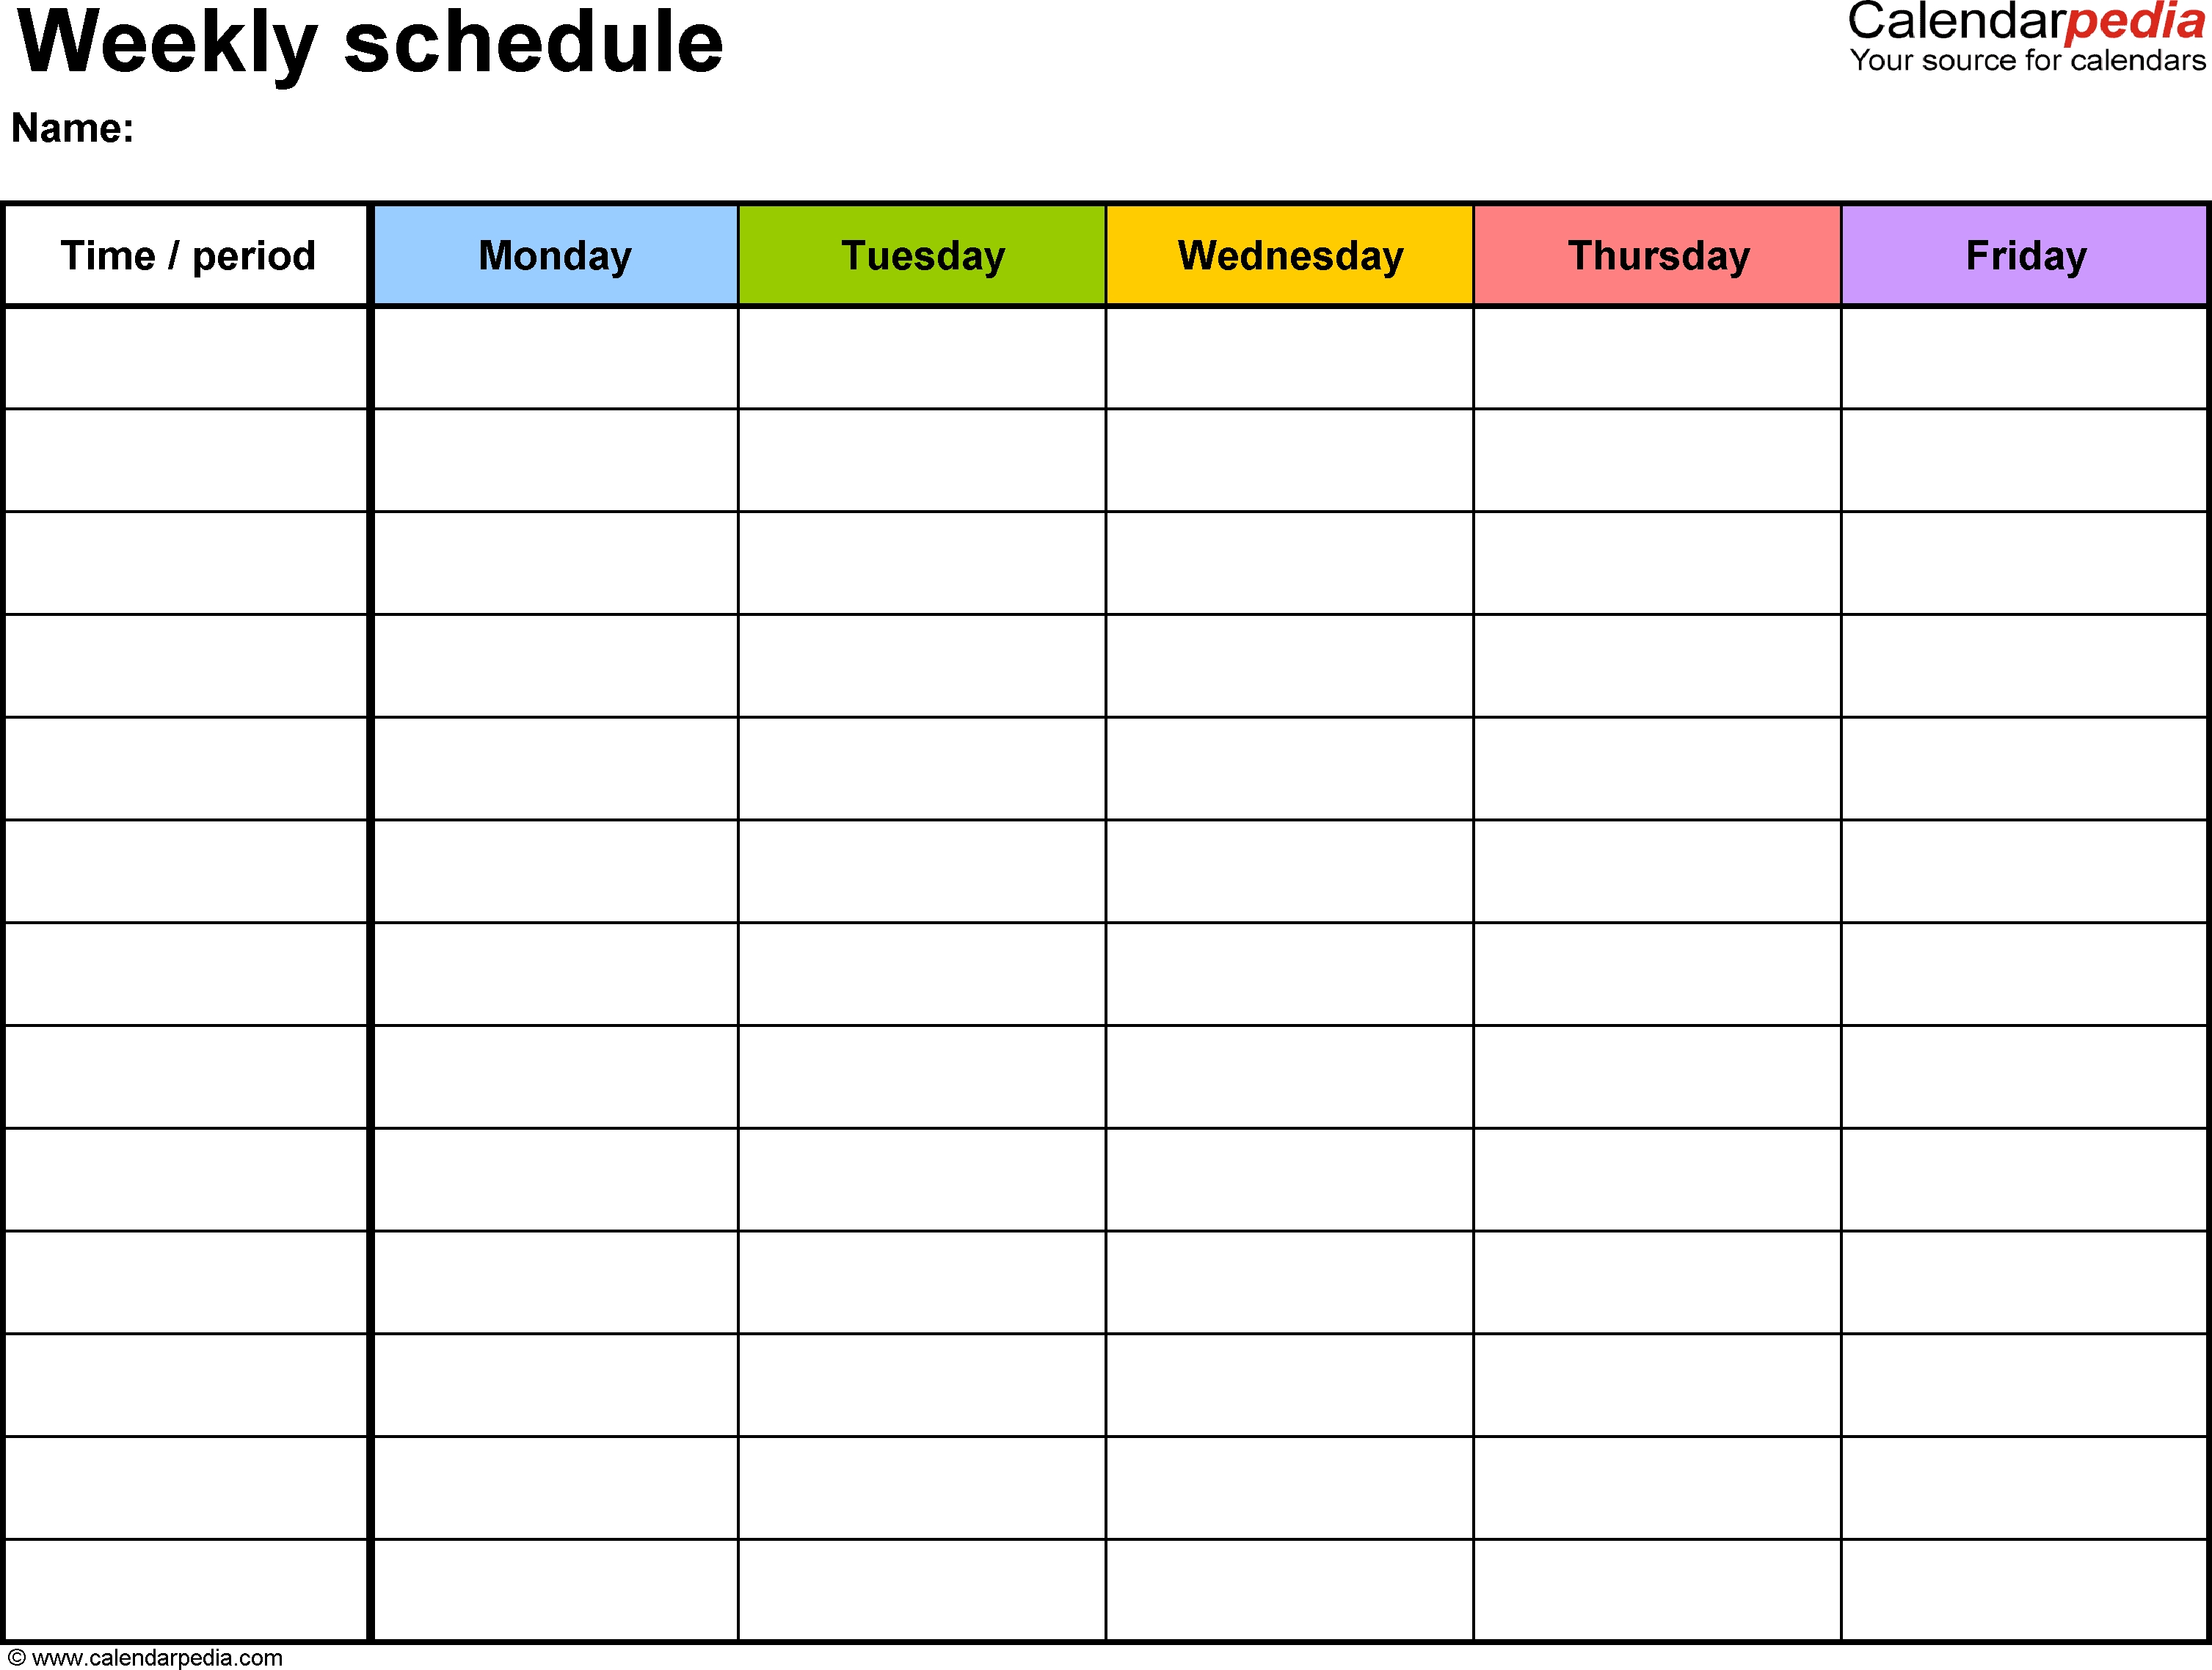 Free Weekly Schedule Templates For Word - 18 Templates pertaining to Blank Calendar To Fill In Free